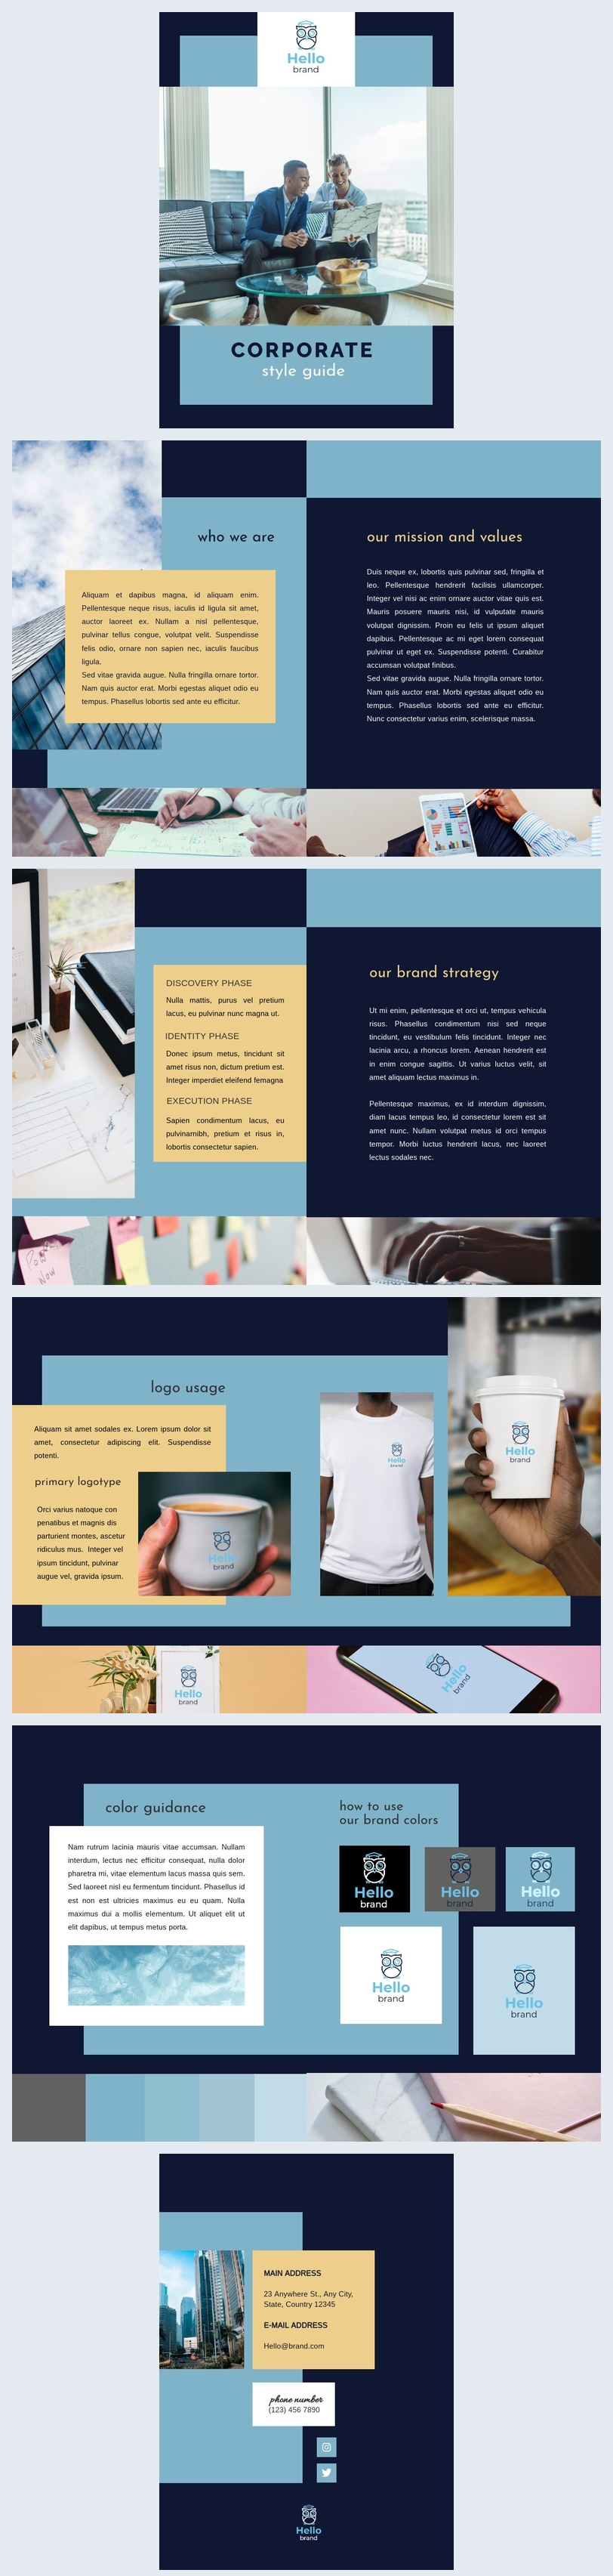 Corporate Style Guide Template